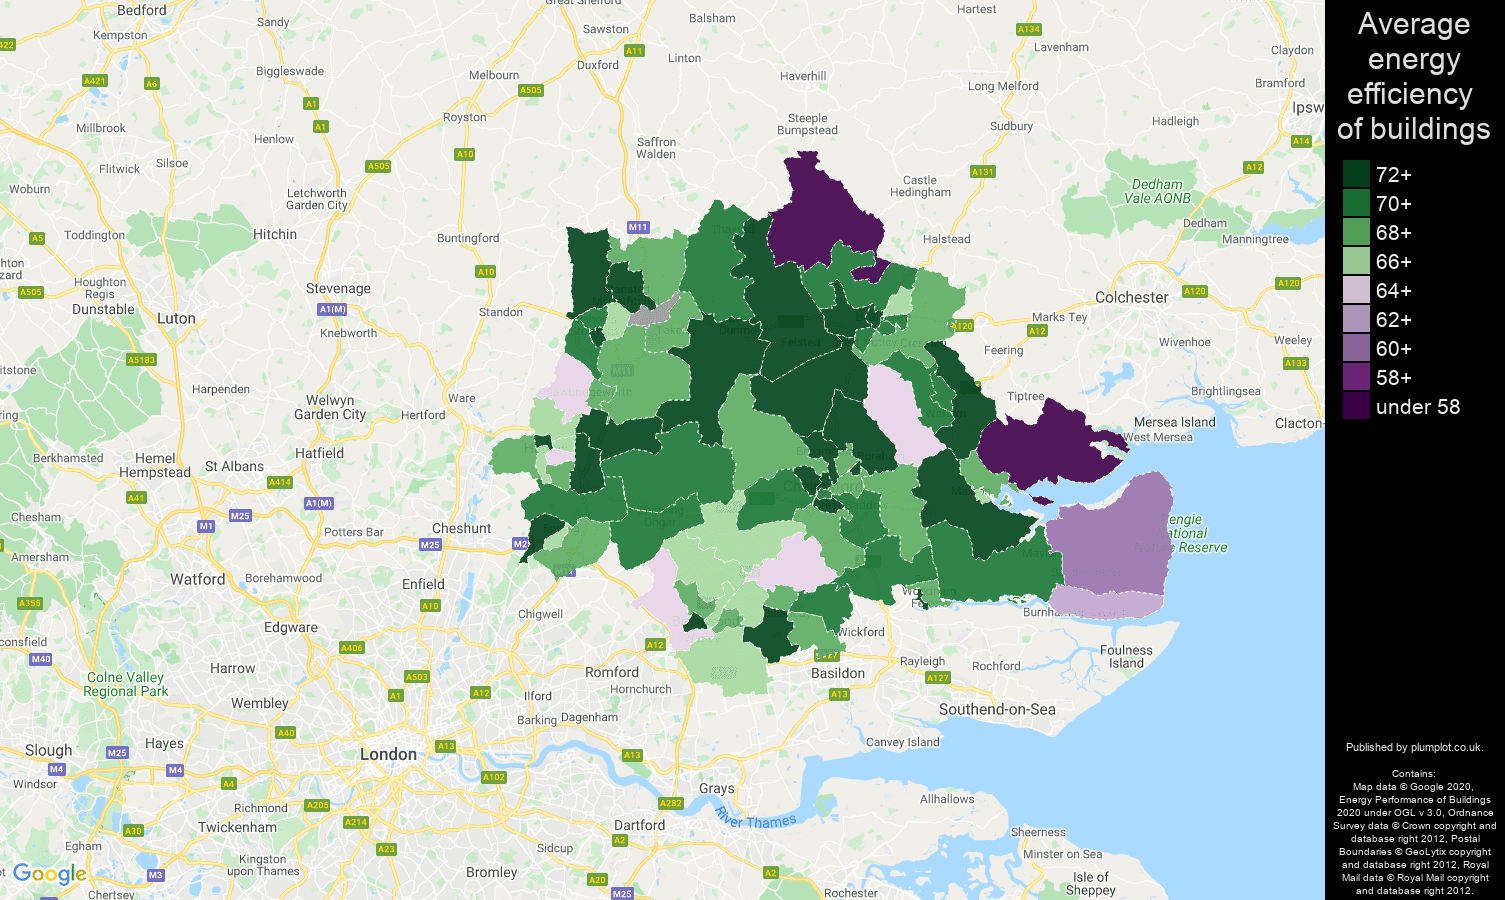 Chelmsford map of energy efficiency of flats